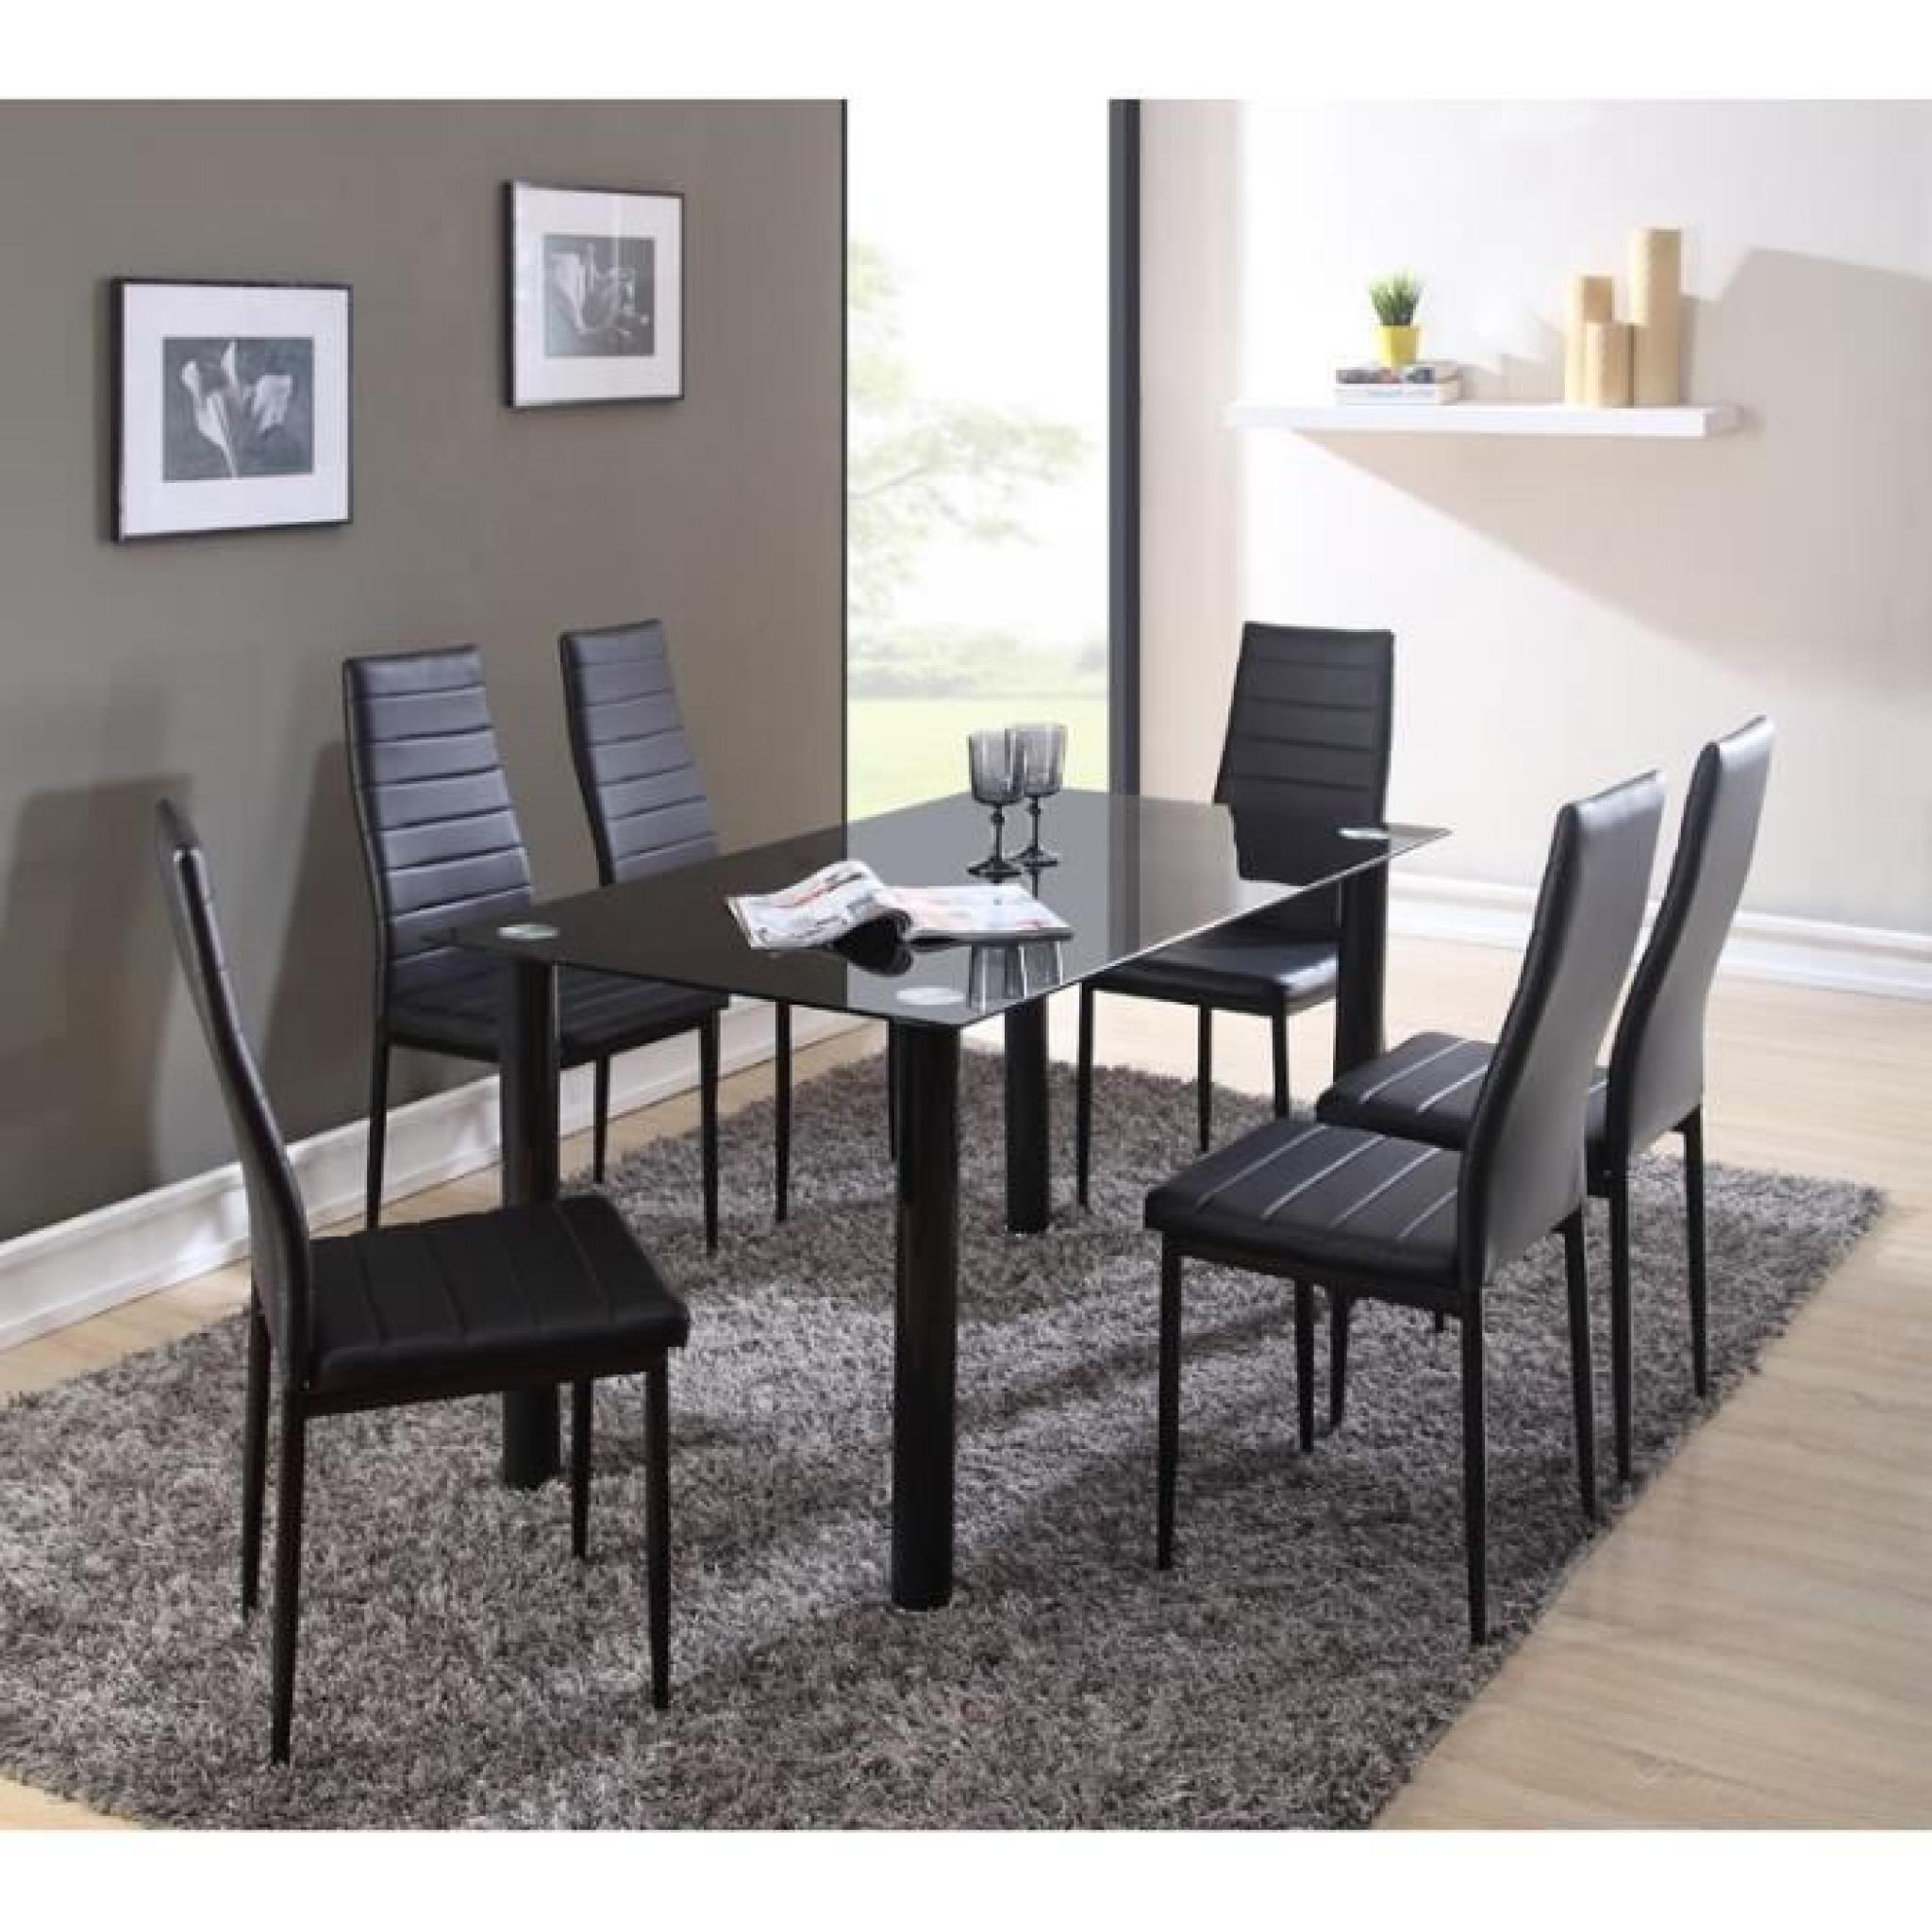 belair ensemble repas coloris noir 7 pi ces 1 table. Black Bedroom Furniture Sets. Home Design Ideas